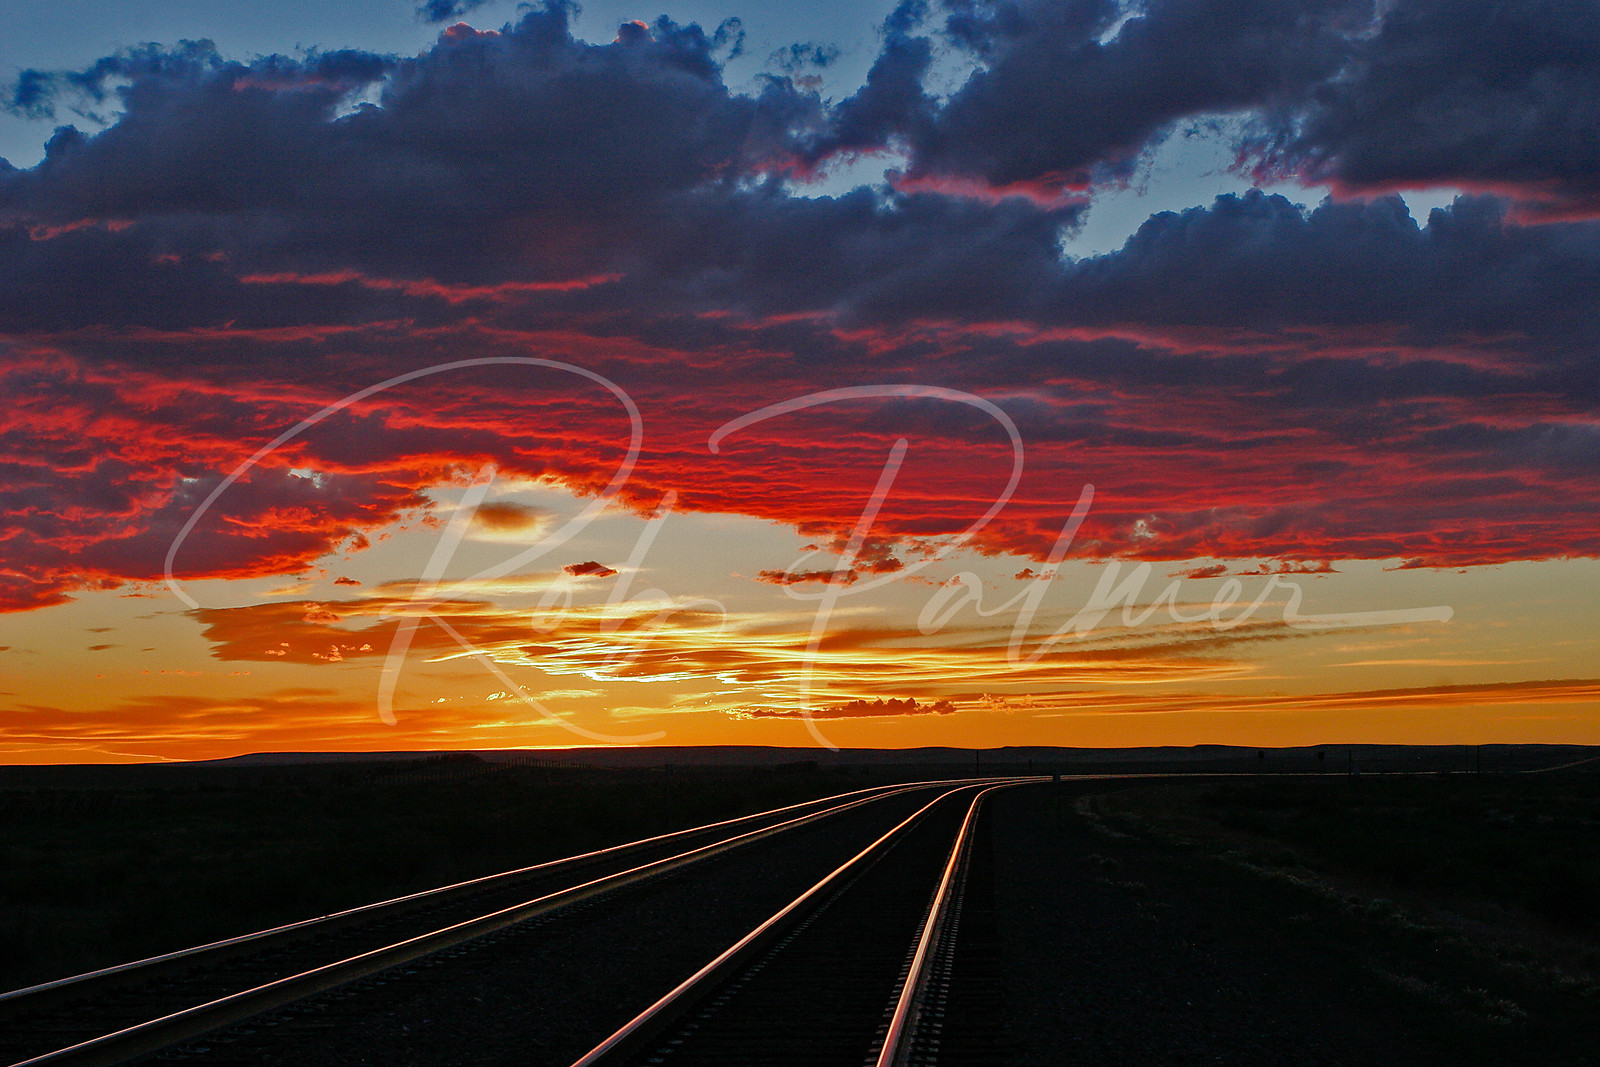 Tracks in the Evening, SE Wyoming